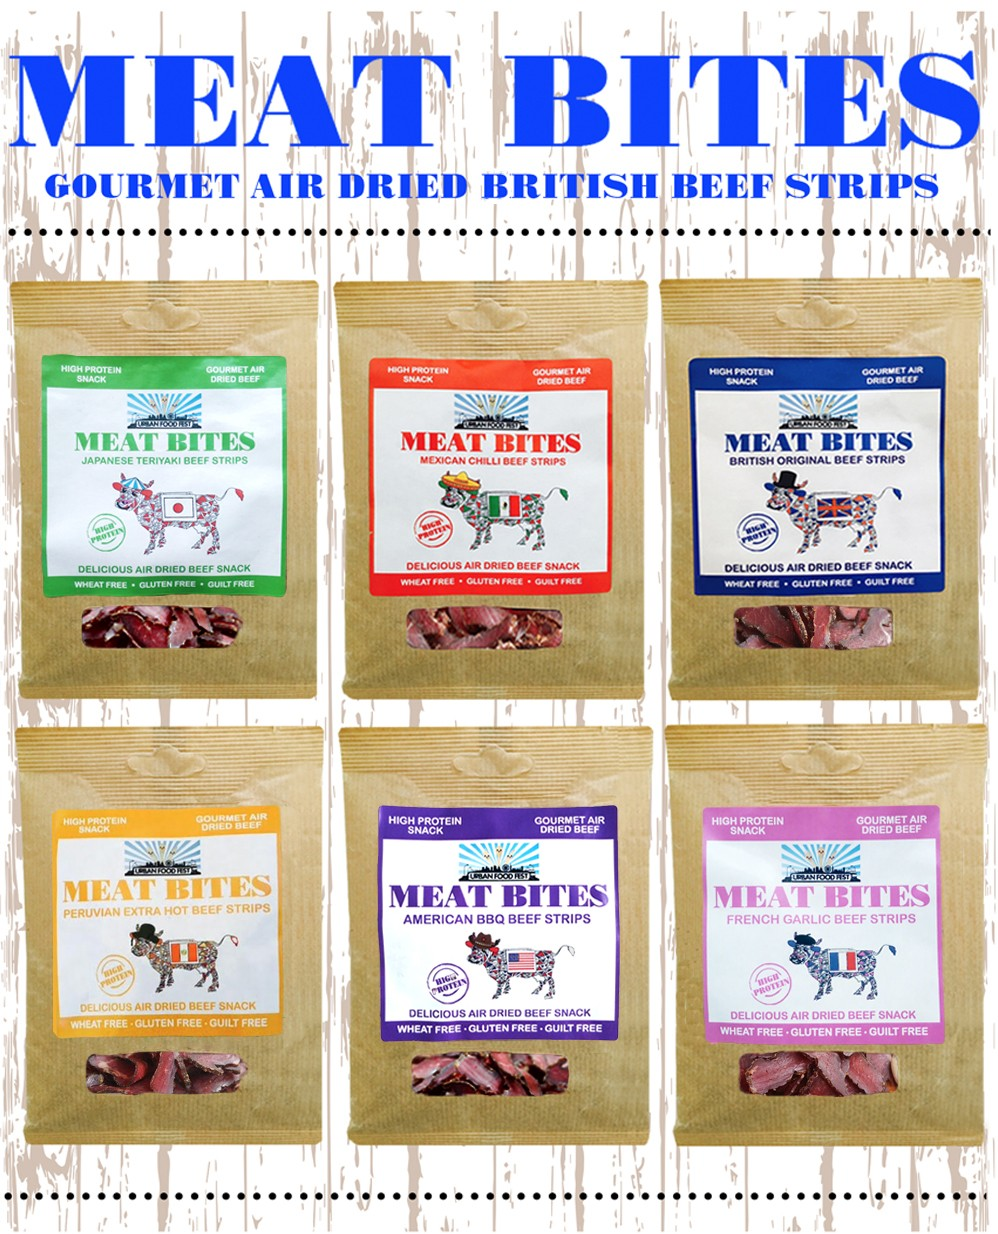 Meat Bites healthy beef strips